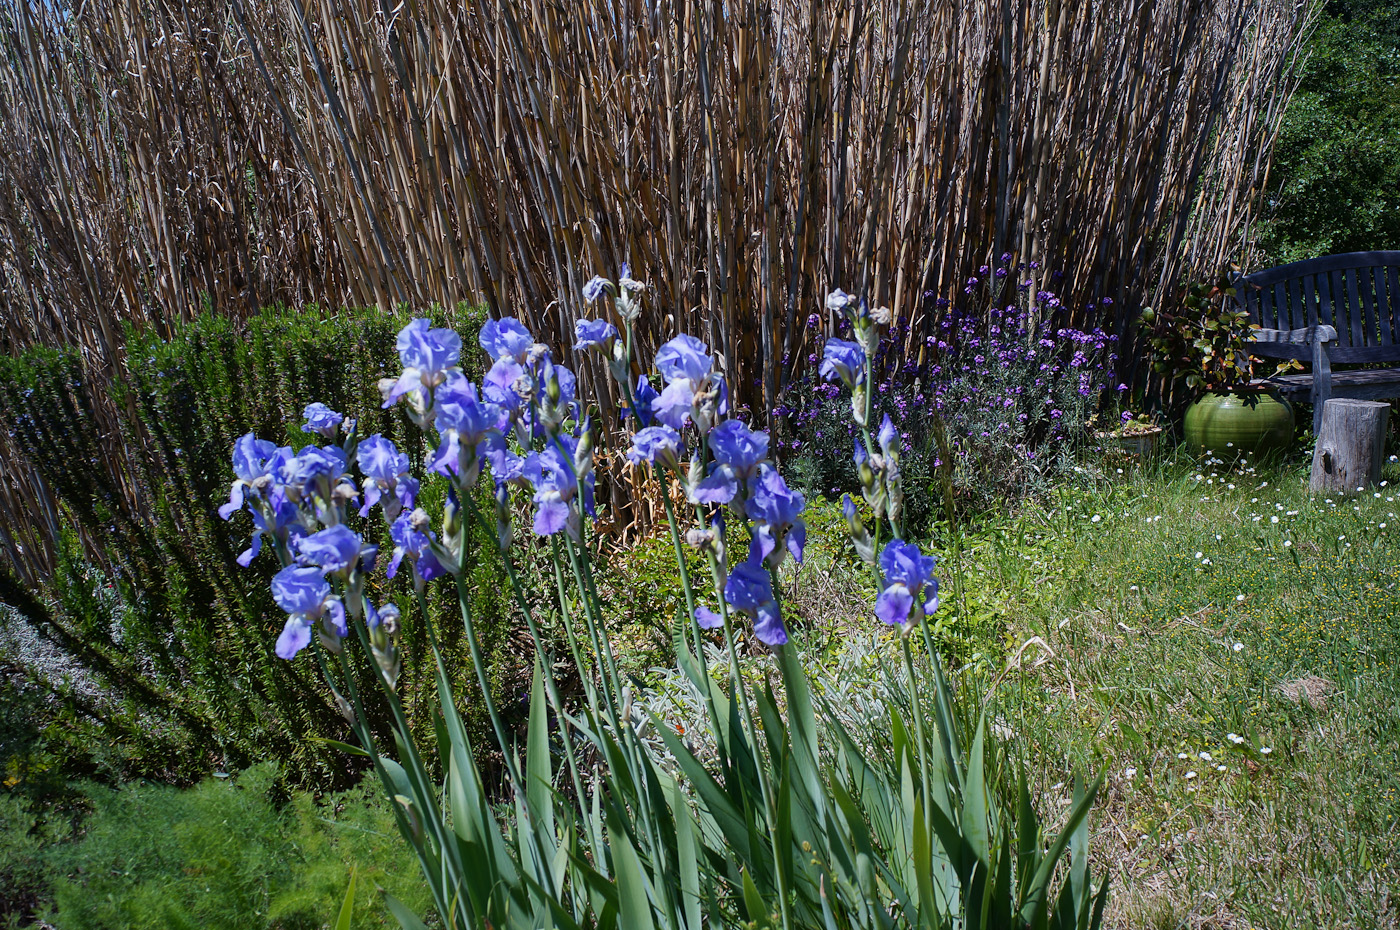 An Iris patch with the Sony NEX-5n